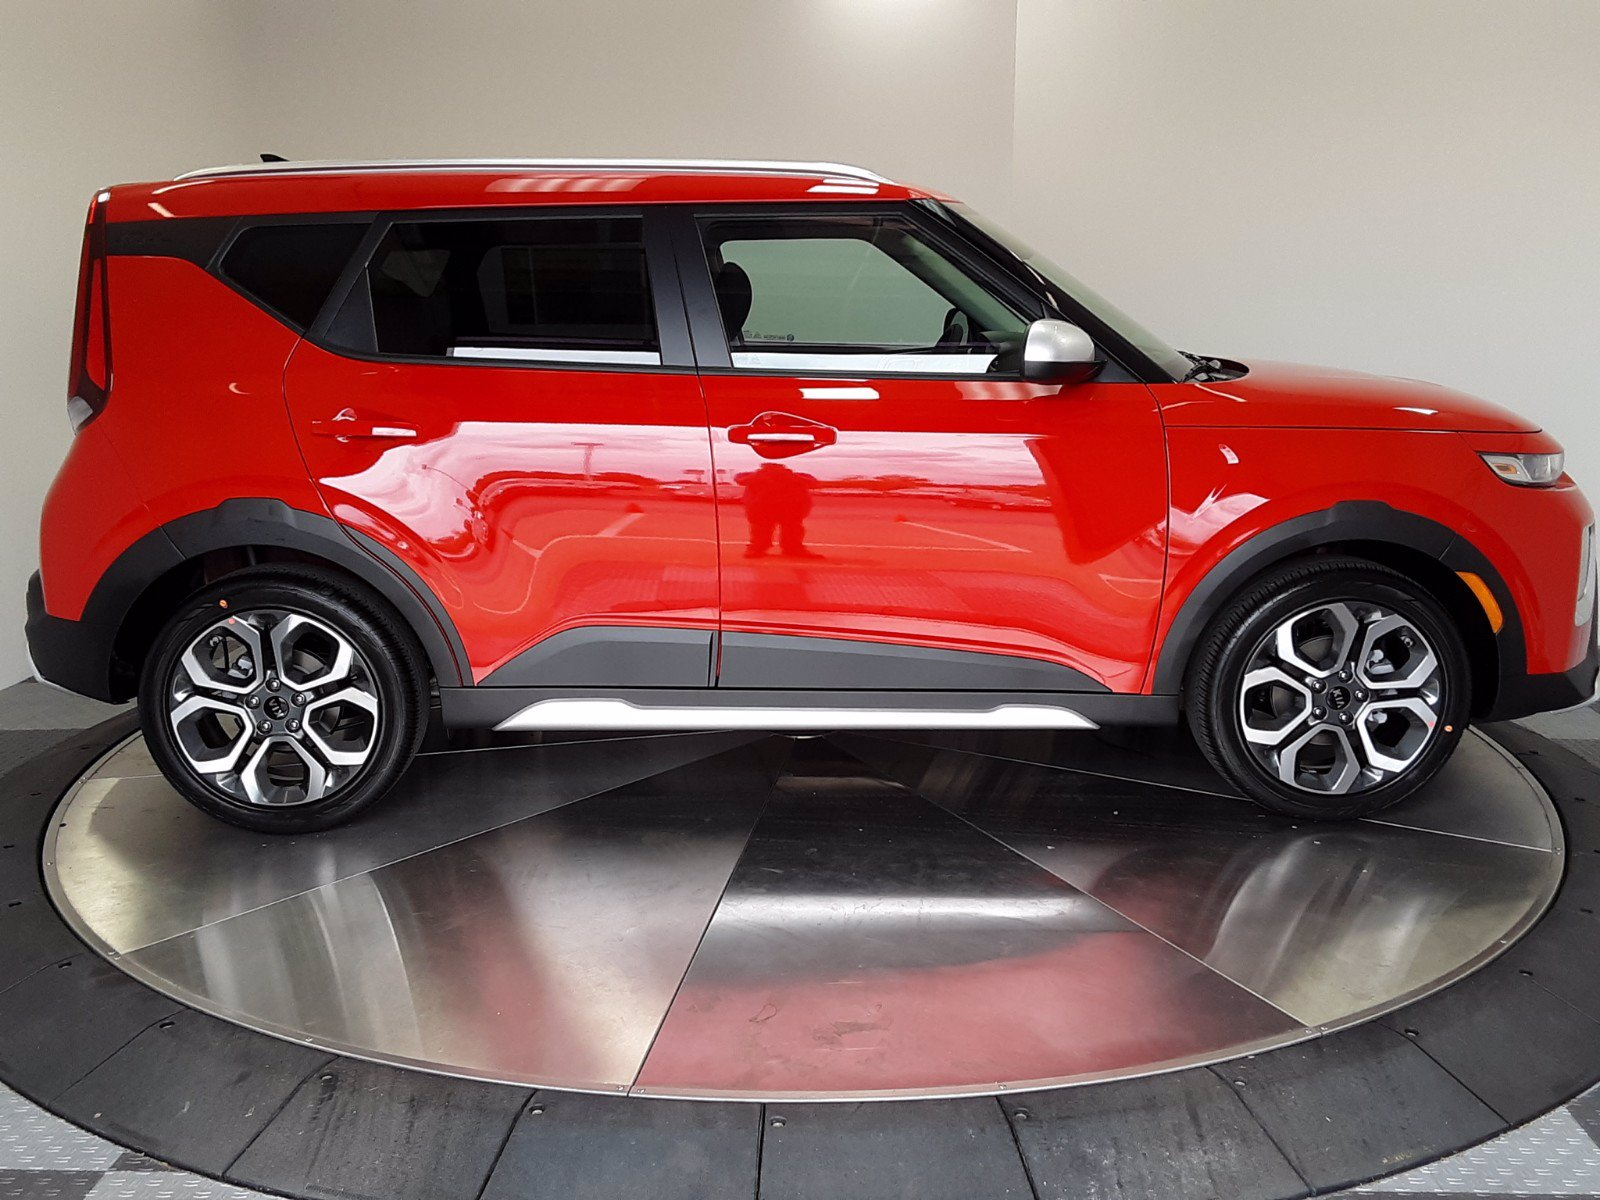 New 2021 Kia Soul X-Line Hatchback in Antioch #125912 ...